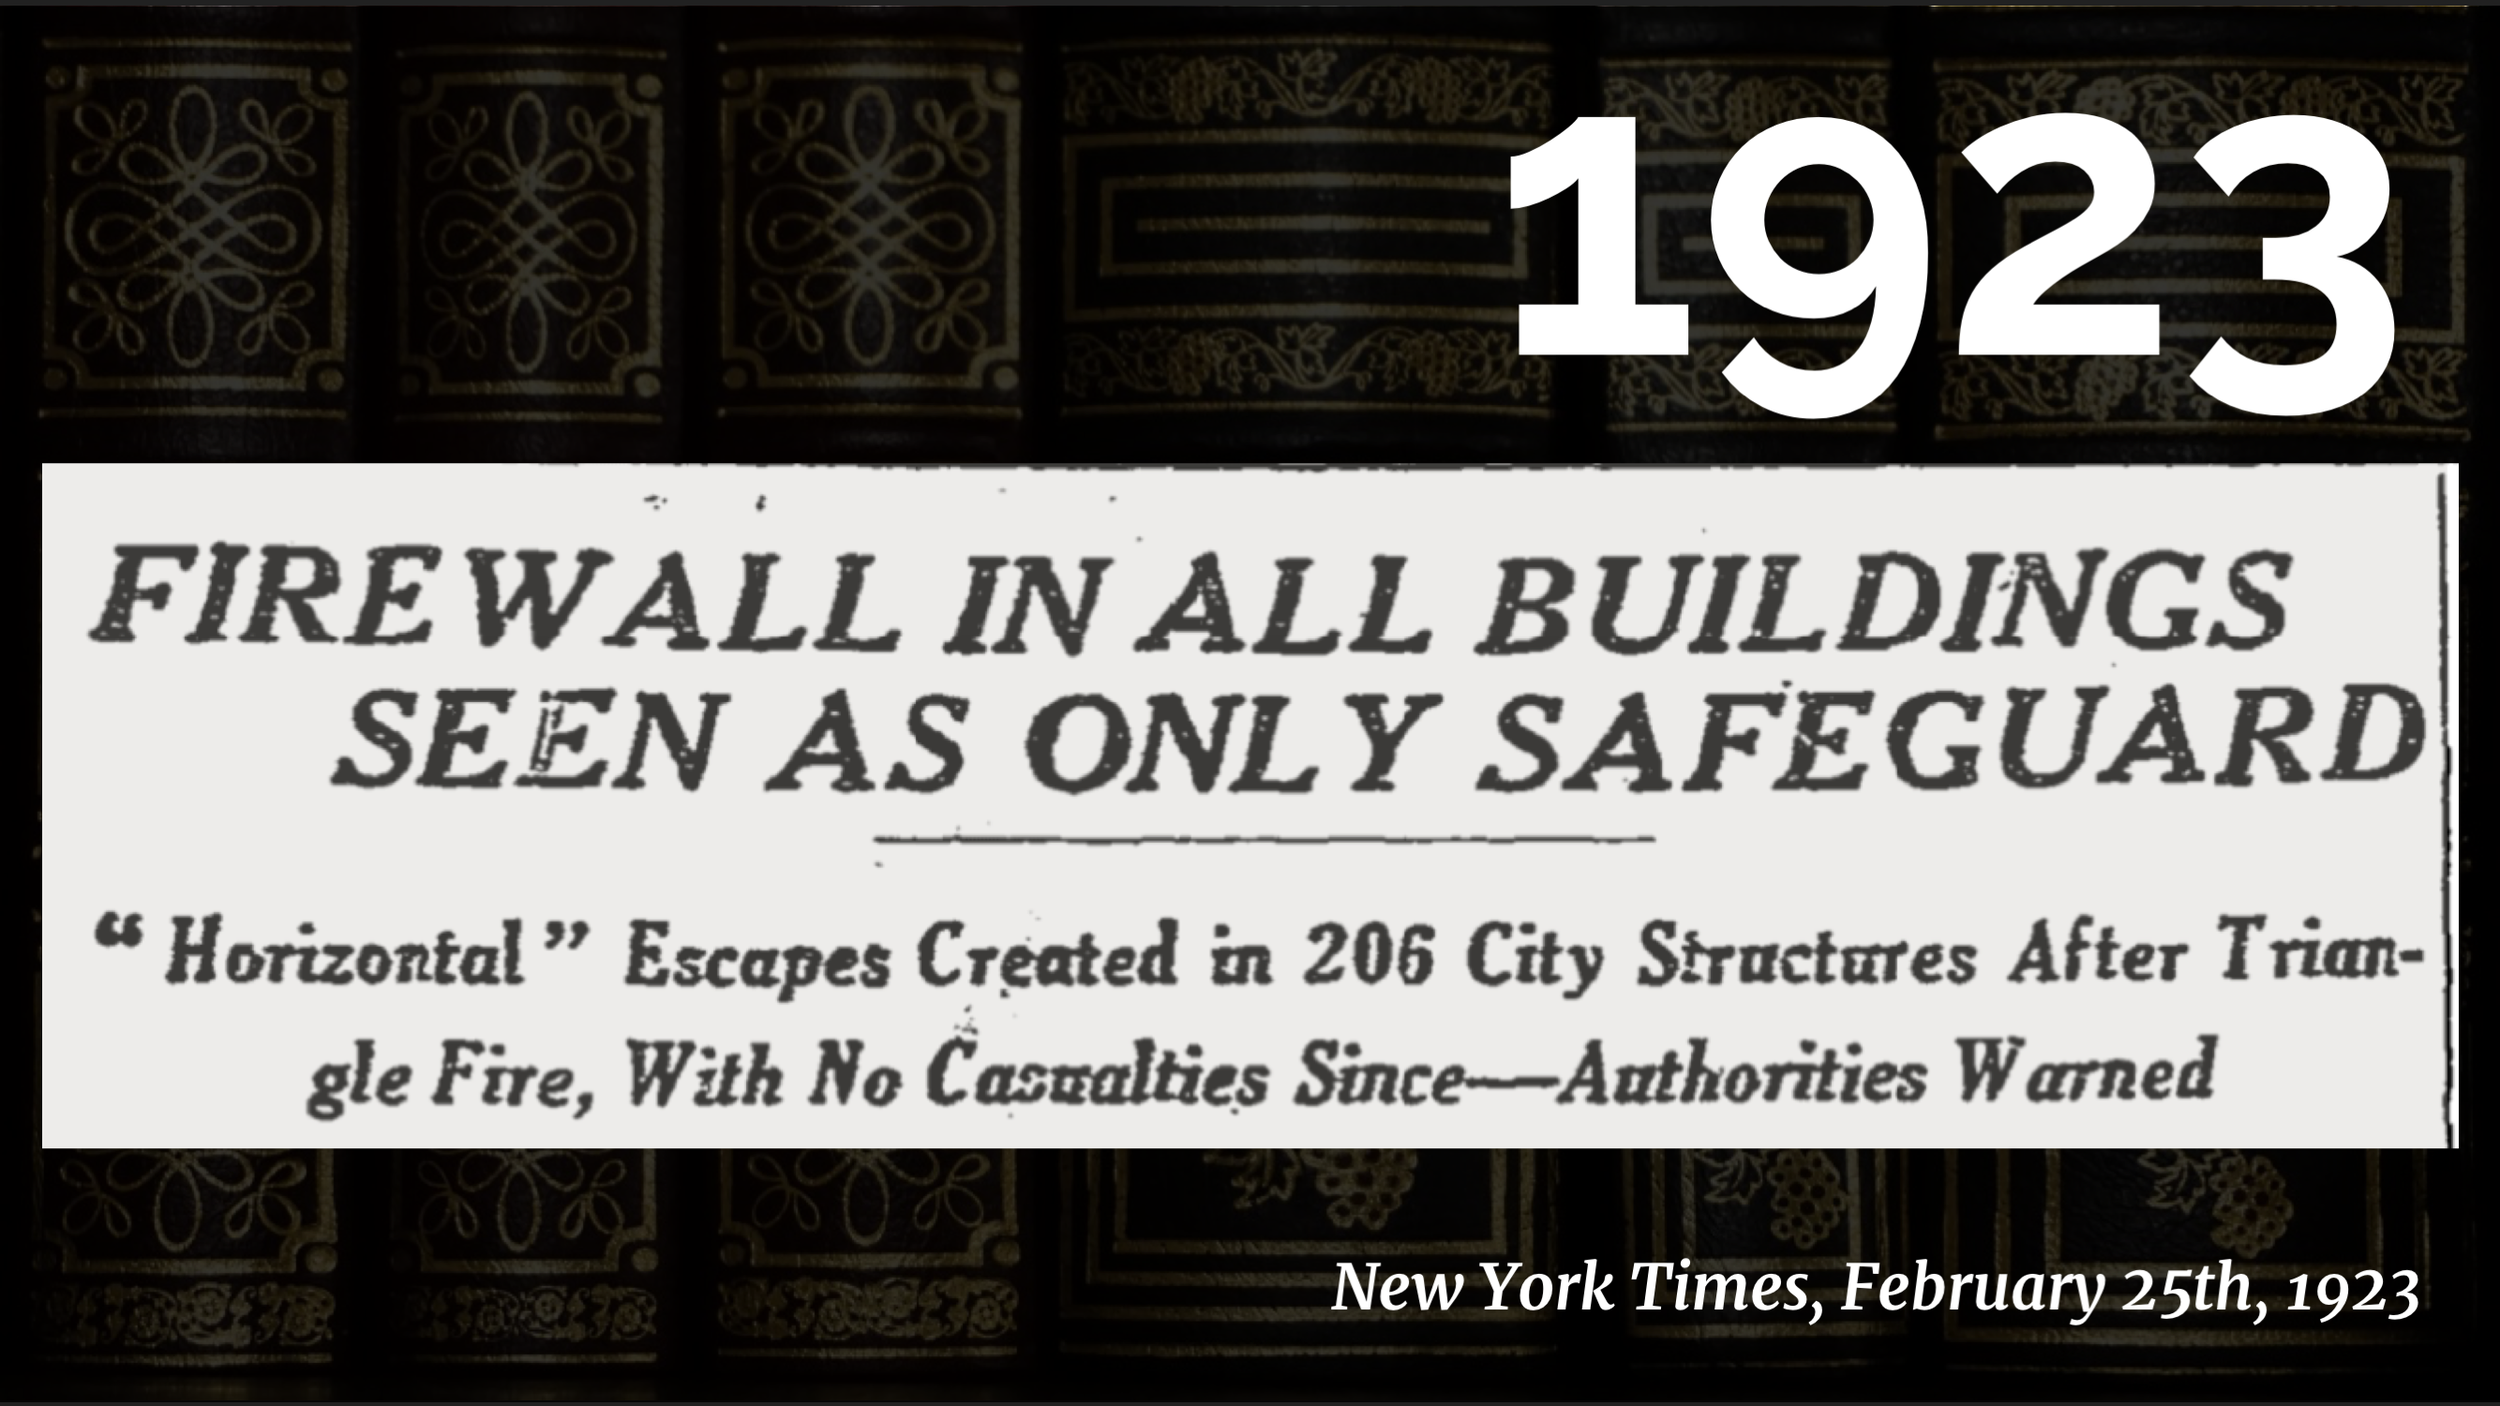 "In 1923, the New York Times had an  article  praising  fireproof interior walls : ""For six years there has been no loss of life by fire in the 200 buildings so treated.""     It blows my mind that a group of 206 buildings having no fire deaths in six years was considered newsworthy.     In 1929 those fireproof walls became code: all new buildings over 75 feet in height  had to have  them, and also had to have two fully enclosed staircases! Failure domains are part of the code at last!"